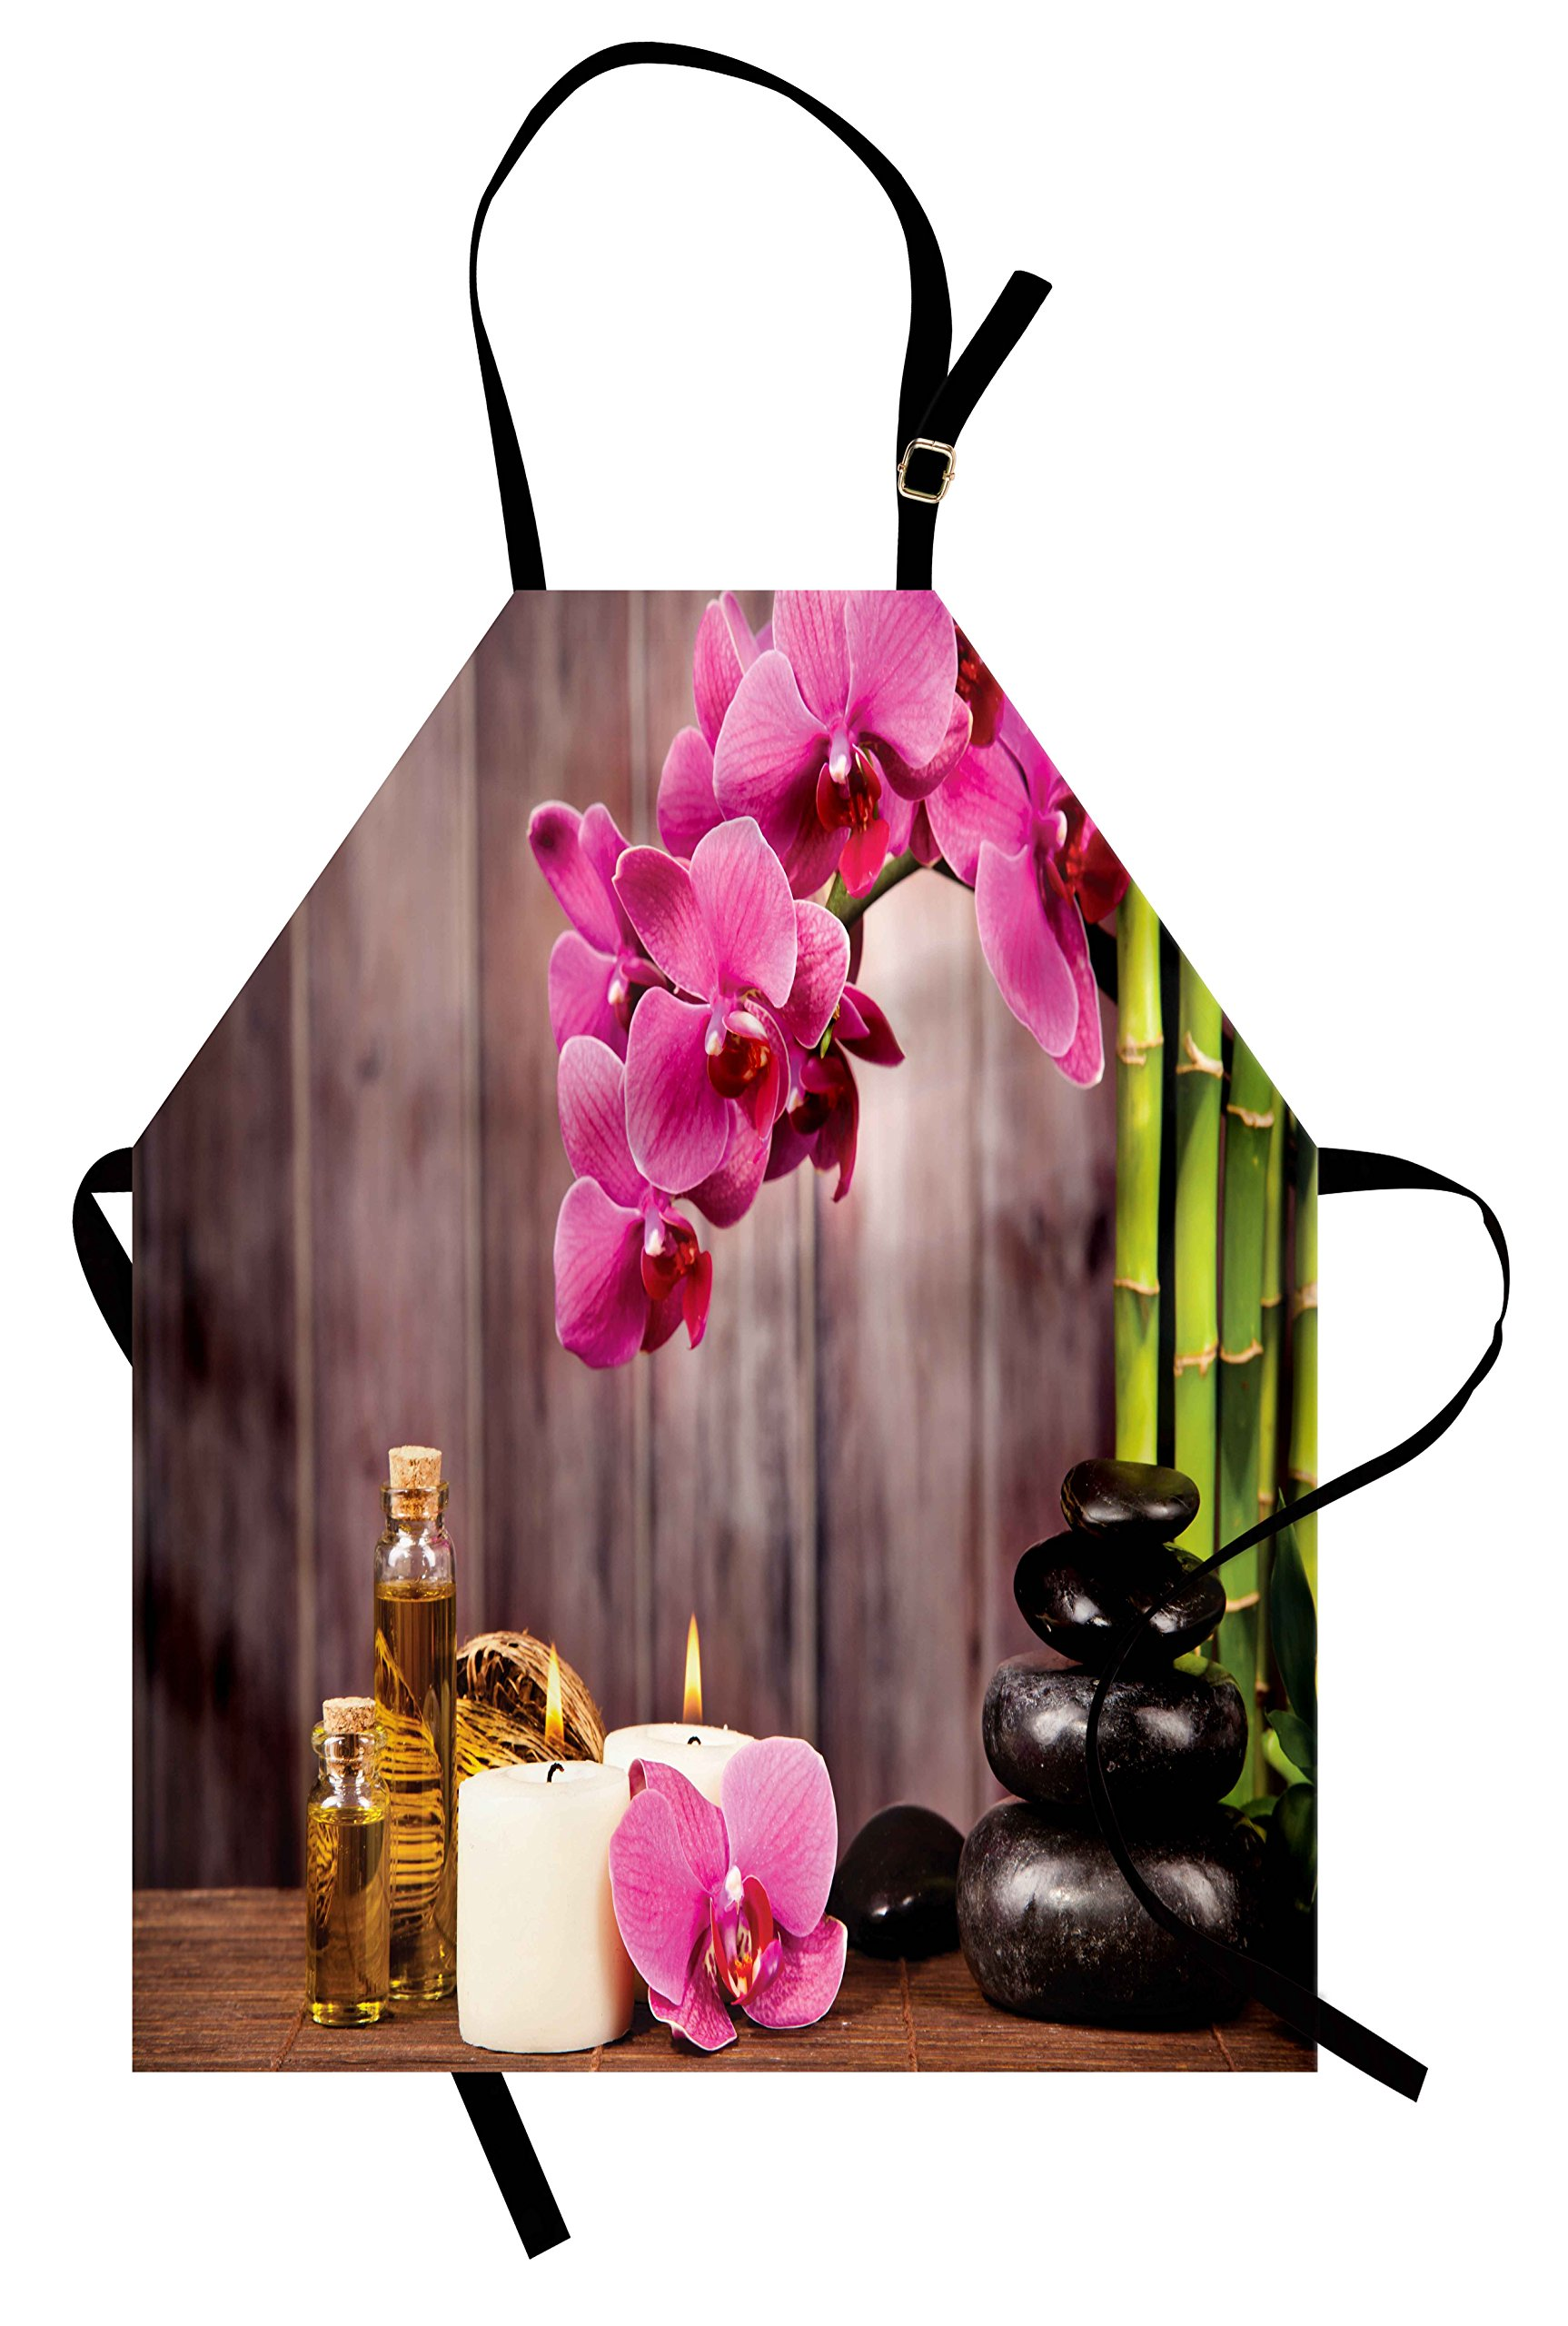 Lunarable Spa Apron, Spa Orchid Flowers Rocks Bamboo Asian Style Aromatherapy Massage Therapy Print, Unisex Kitchen Bib Apron with Adjustable Neck for Cooking Baking Gardening, Pink Green Umber